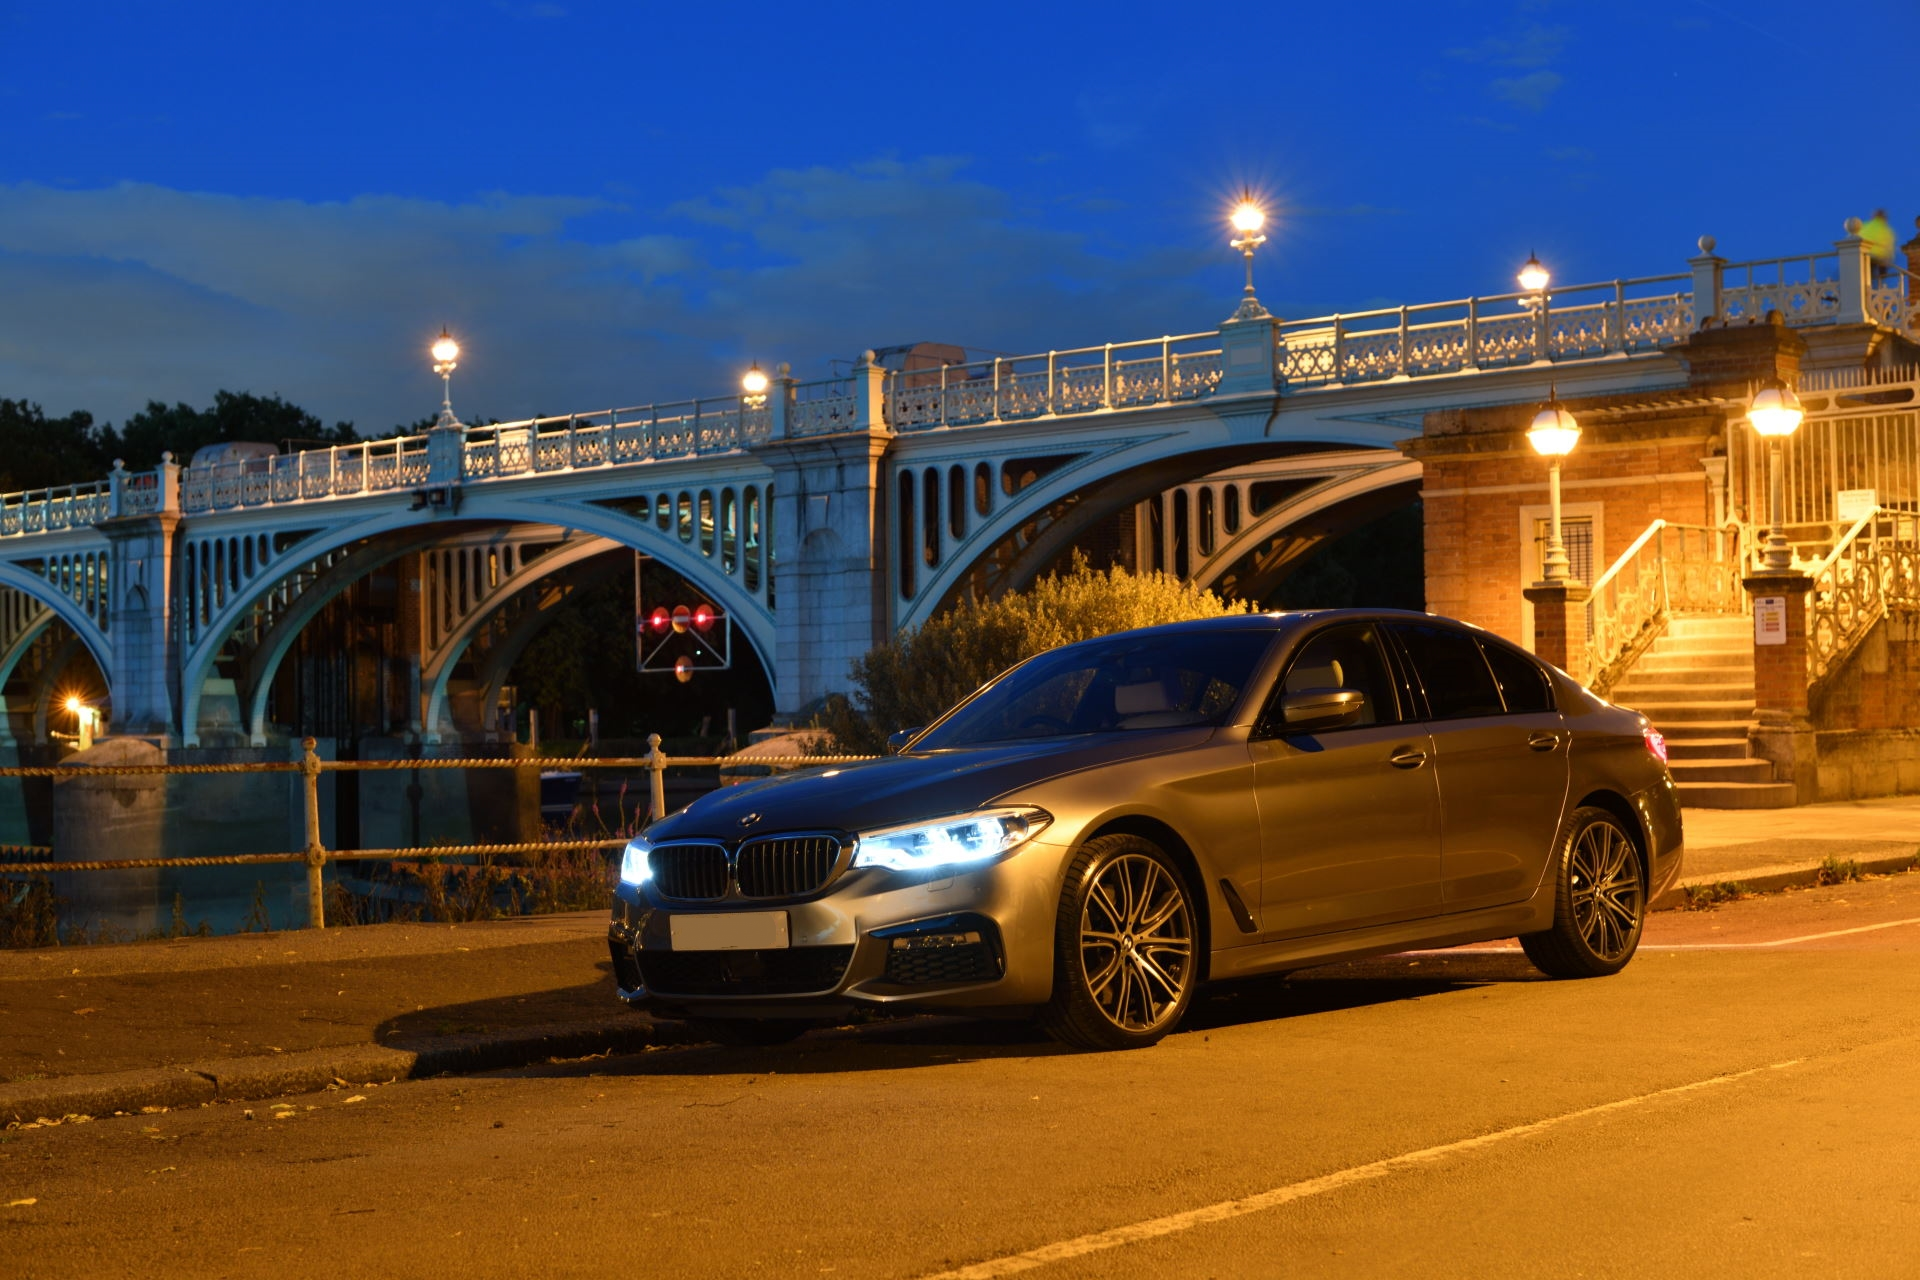 New 540ix Msport (UK)  In-depth review plus pics  - BMW 5